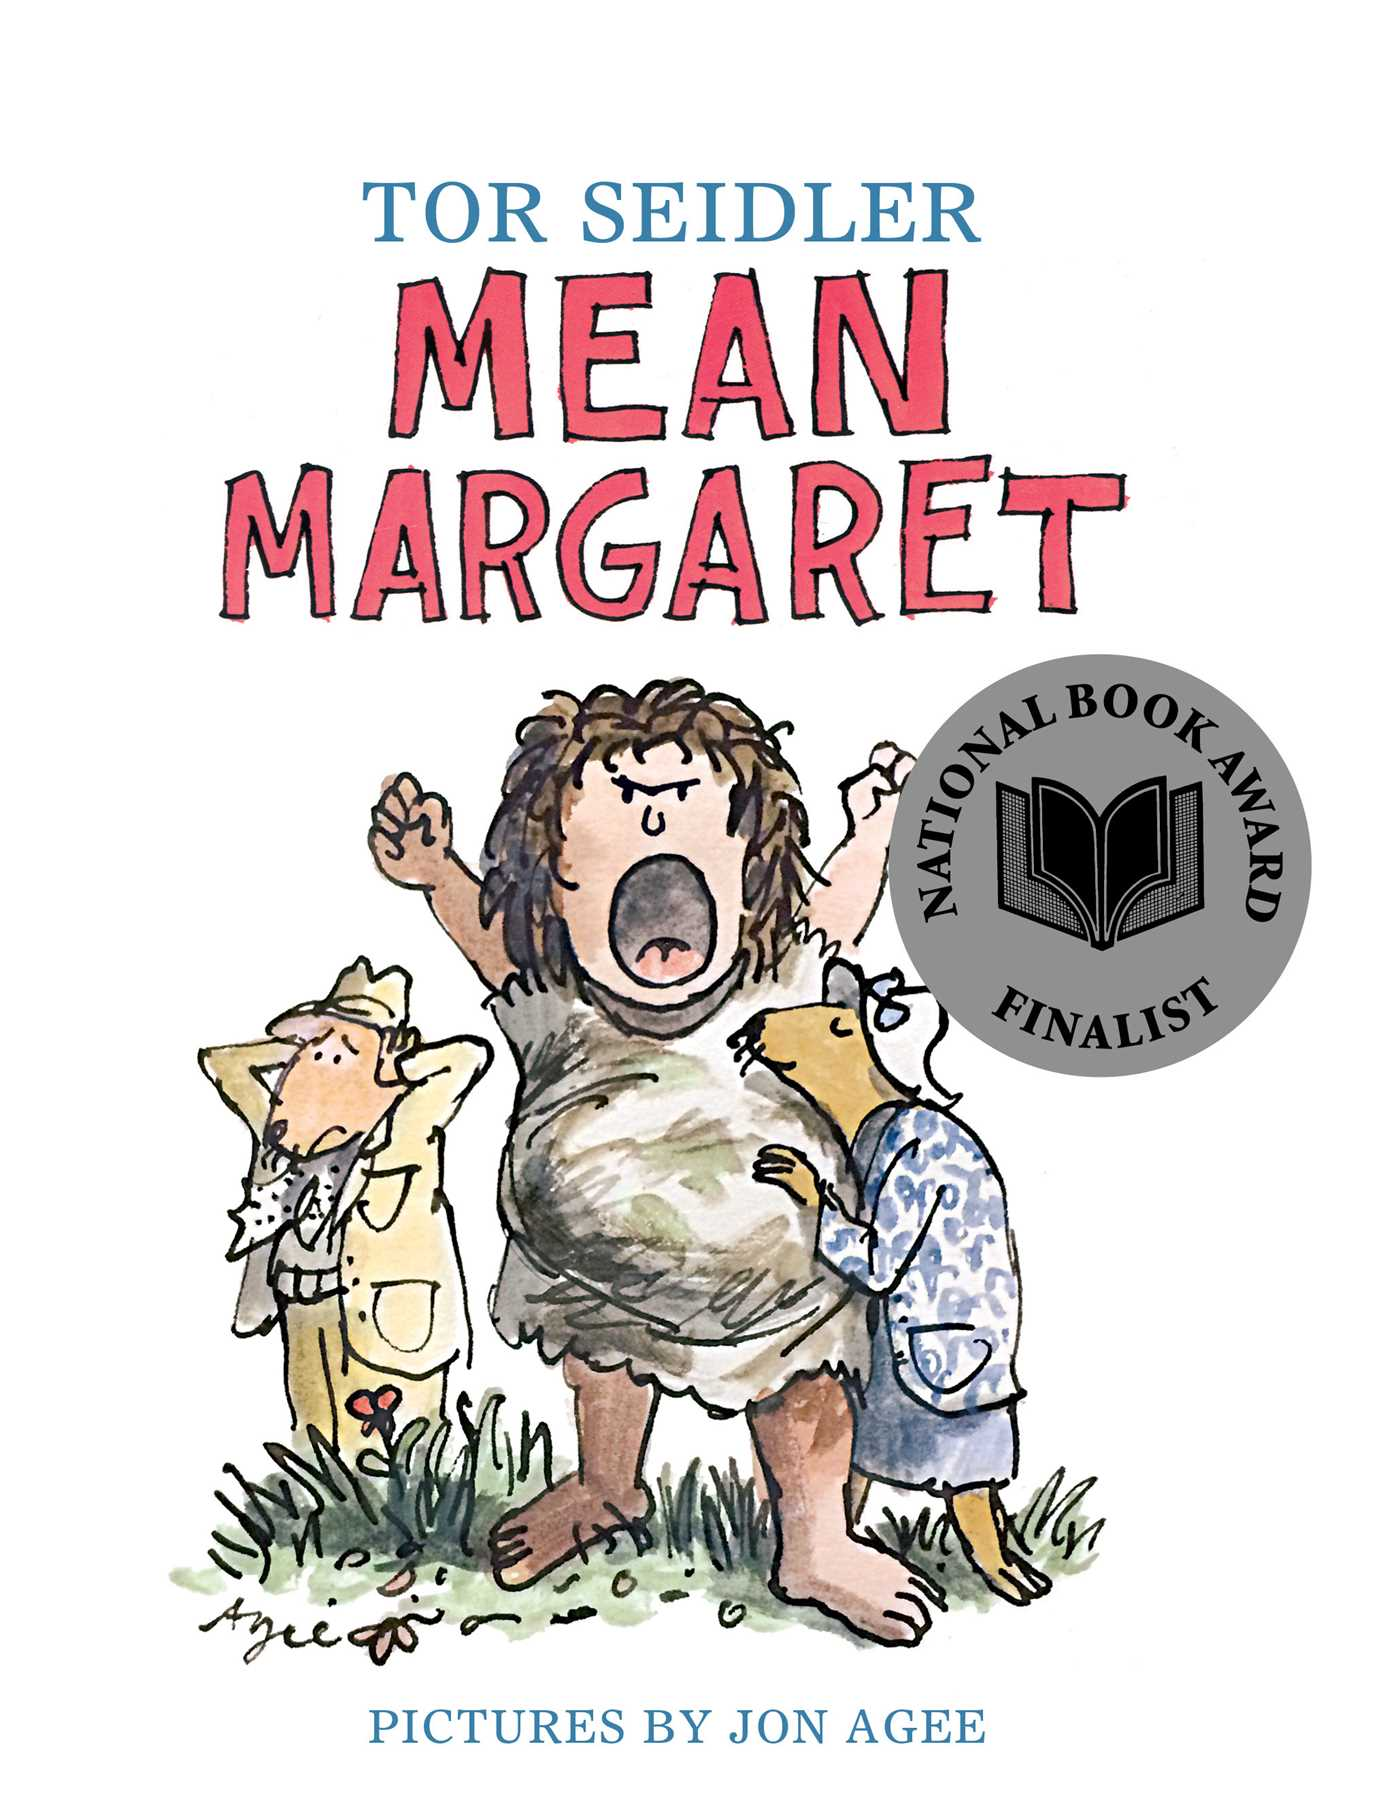 Mean Margaret by Tor Seidler book cover